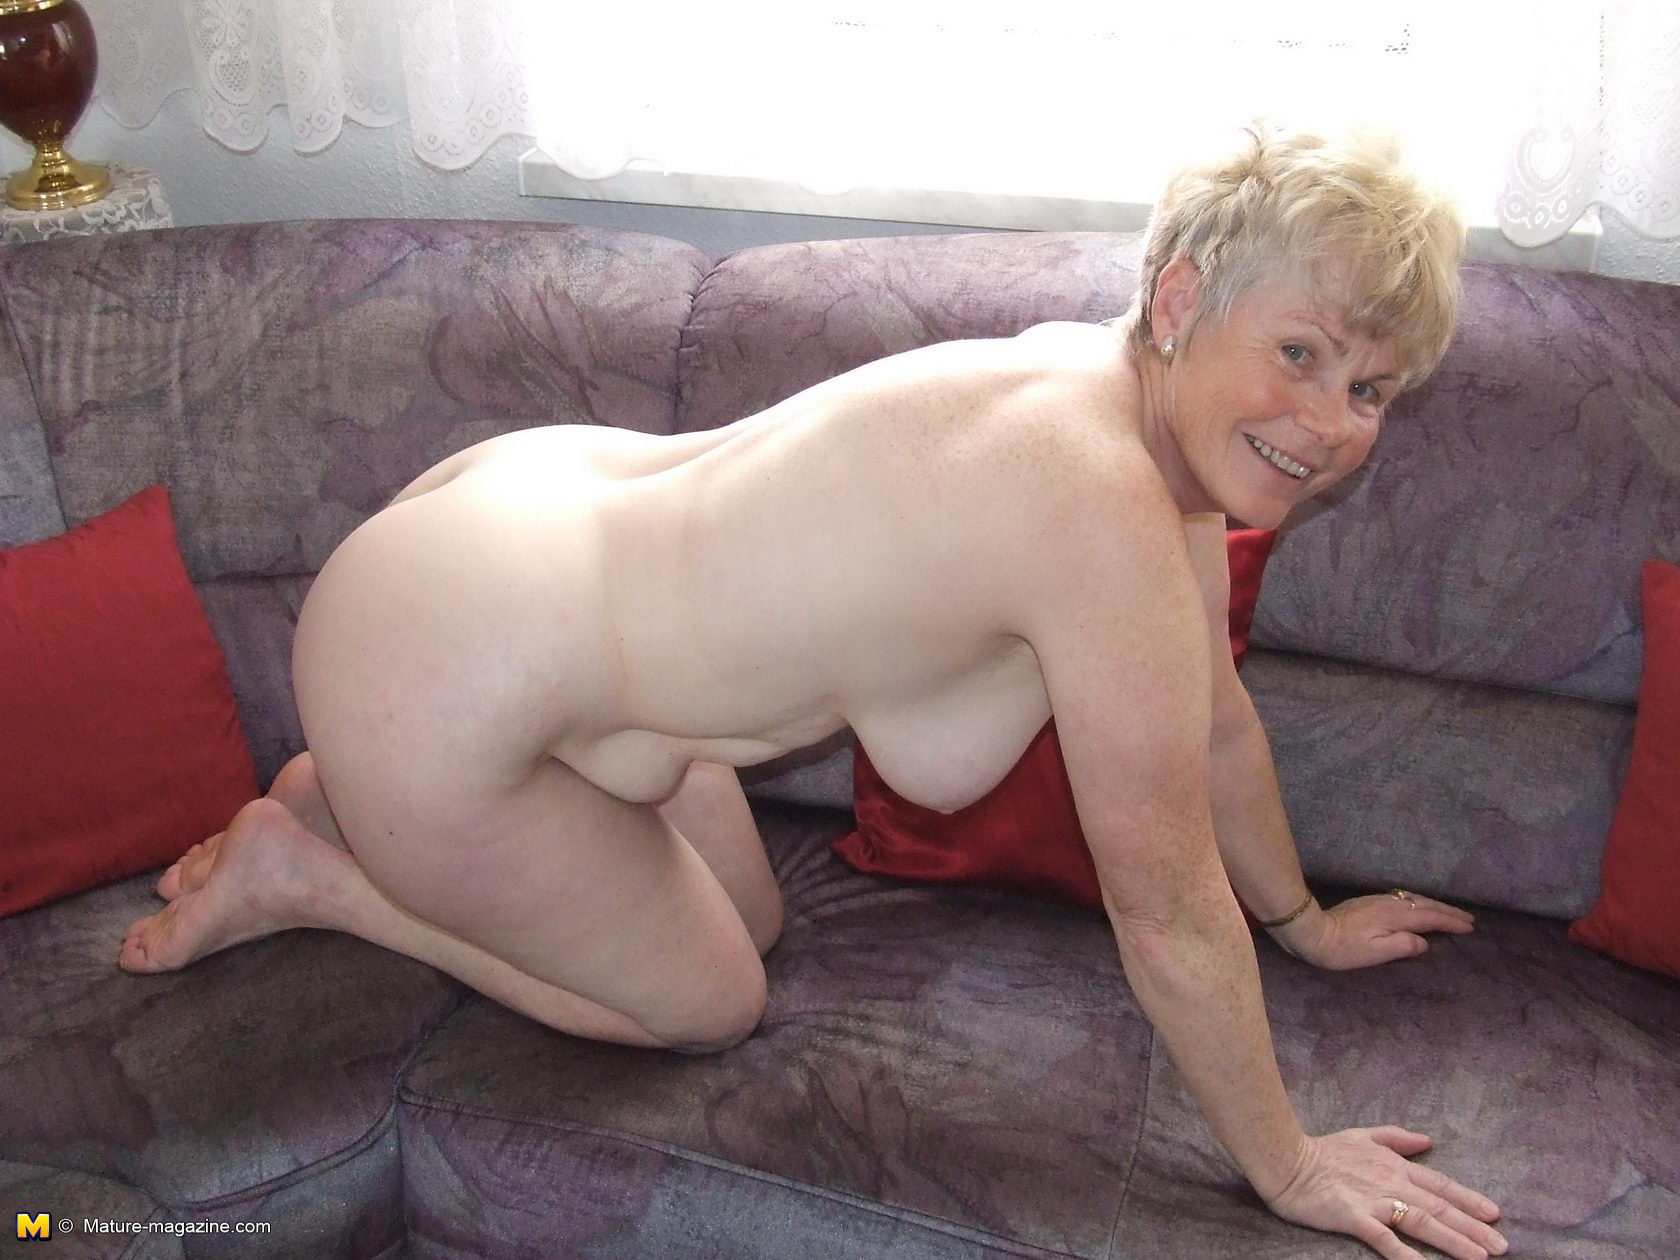 Lady naked pics older Restricted